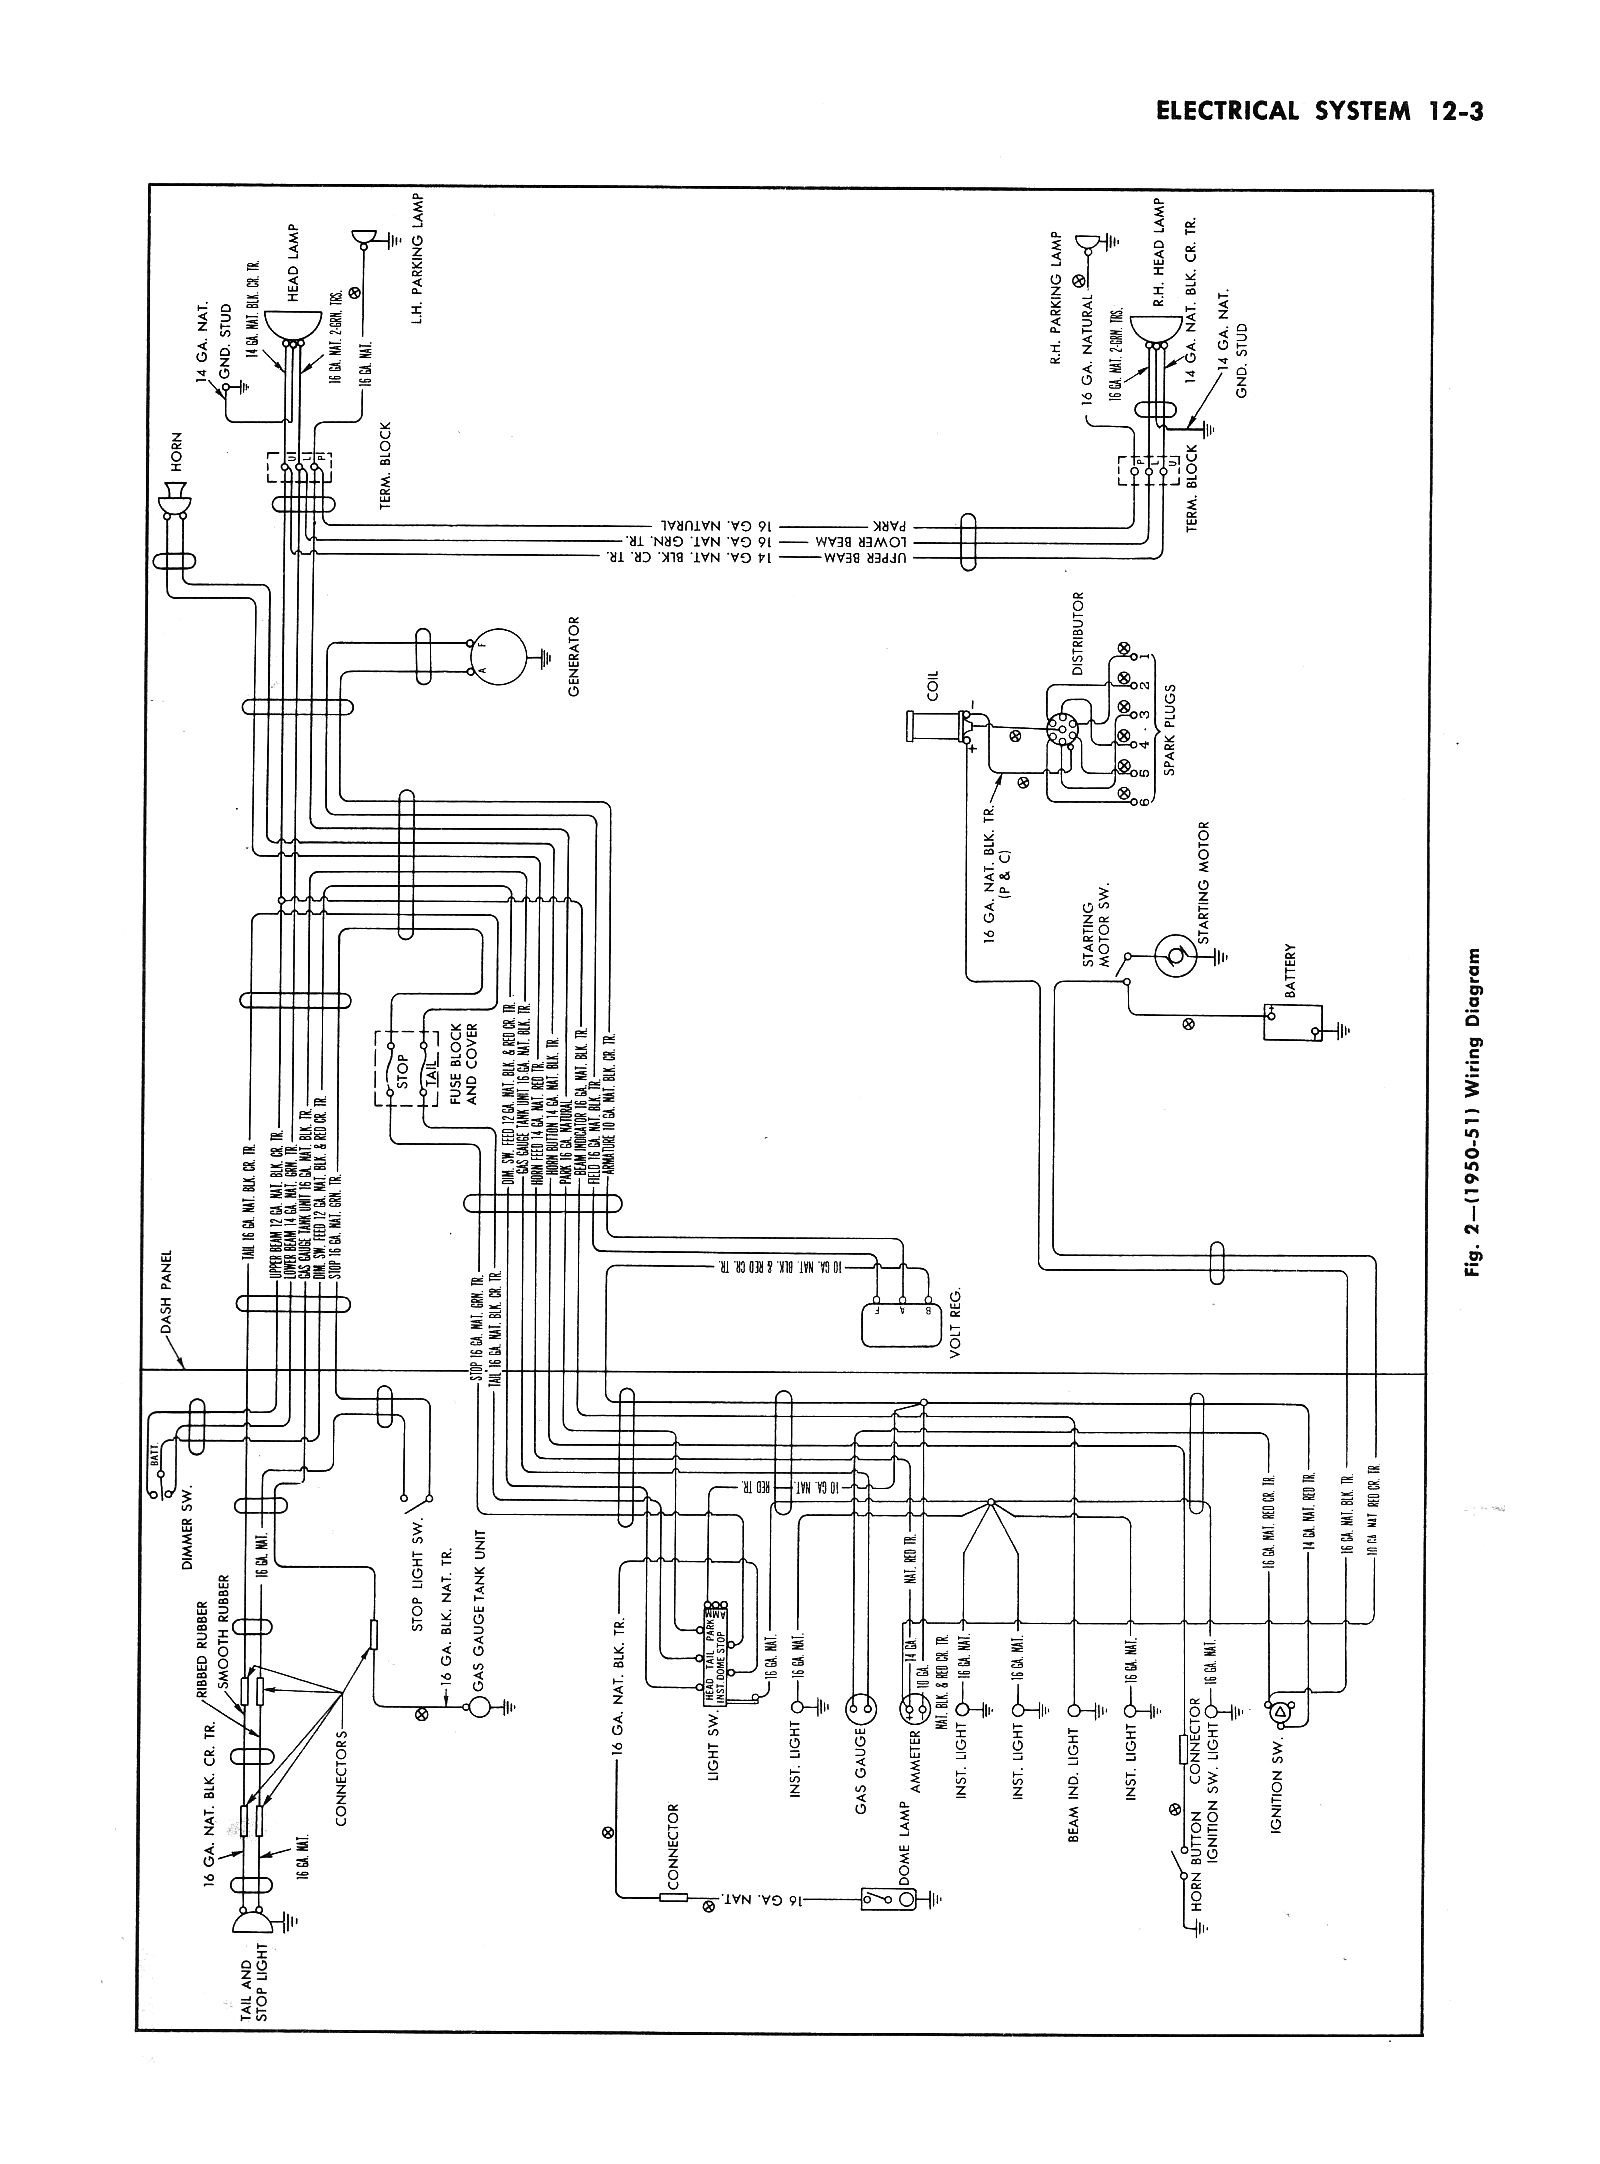 50ctsm1203 chevy wiring diagrams 66 Chevy Headlight Switch Wiring Diagram at soozxer.org